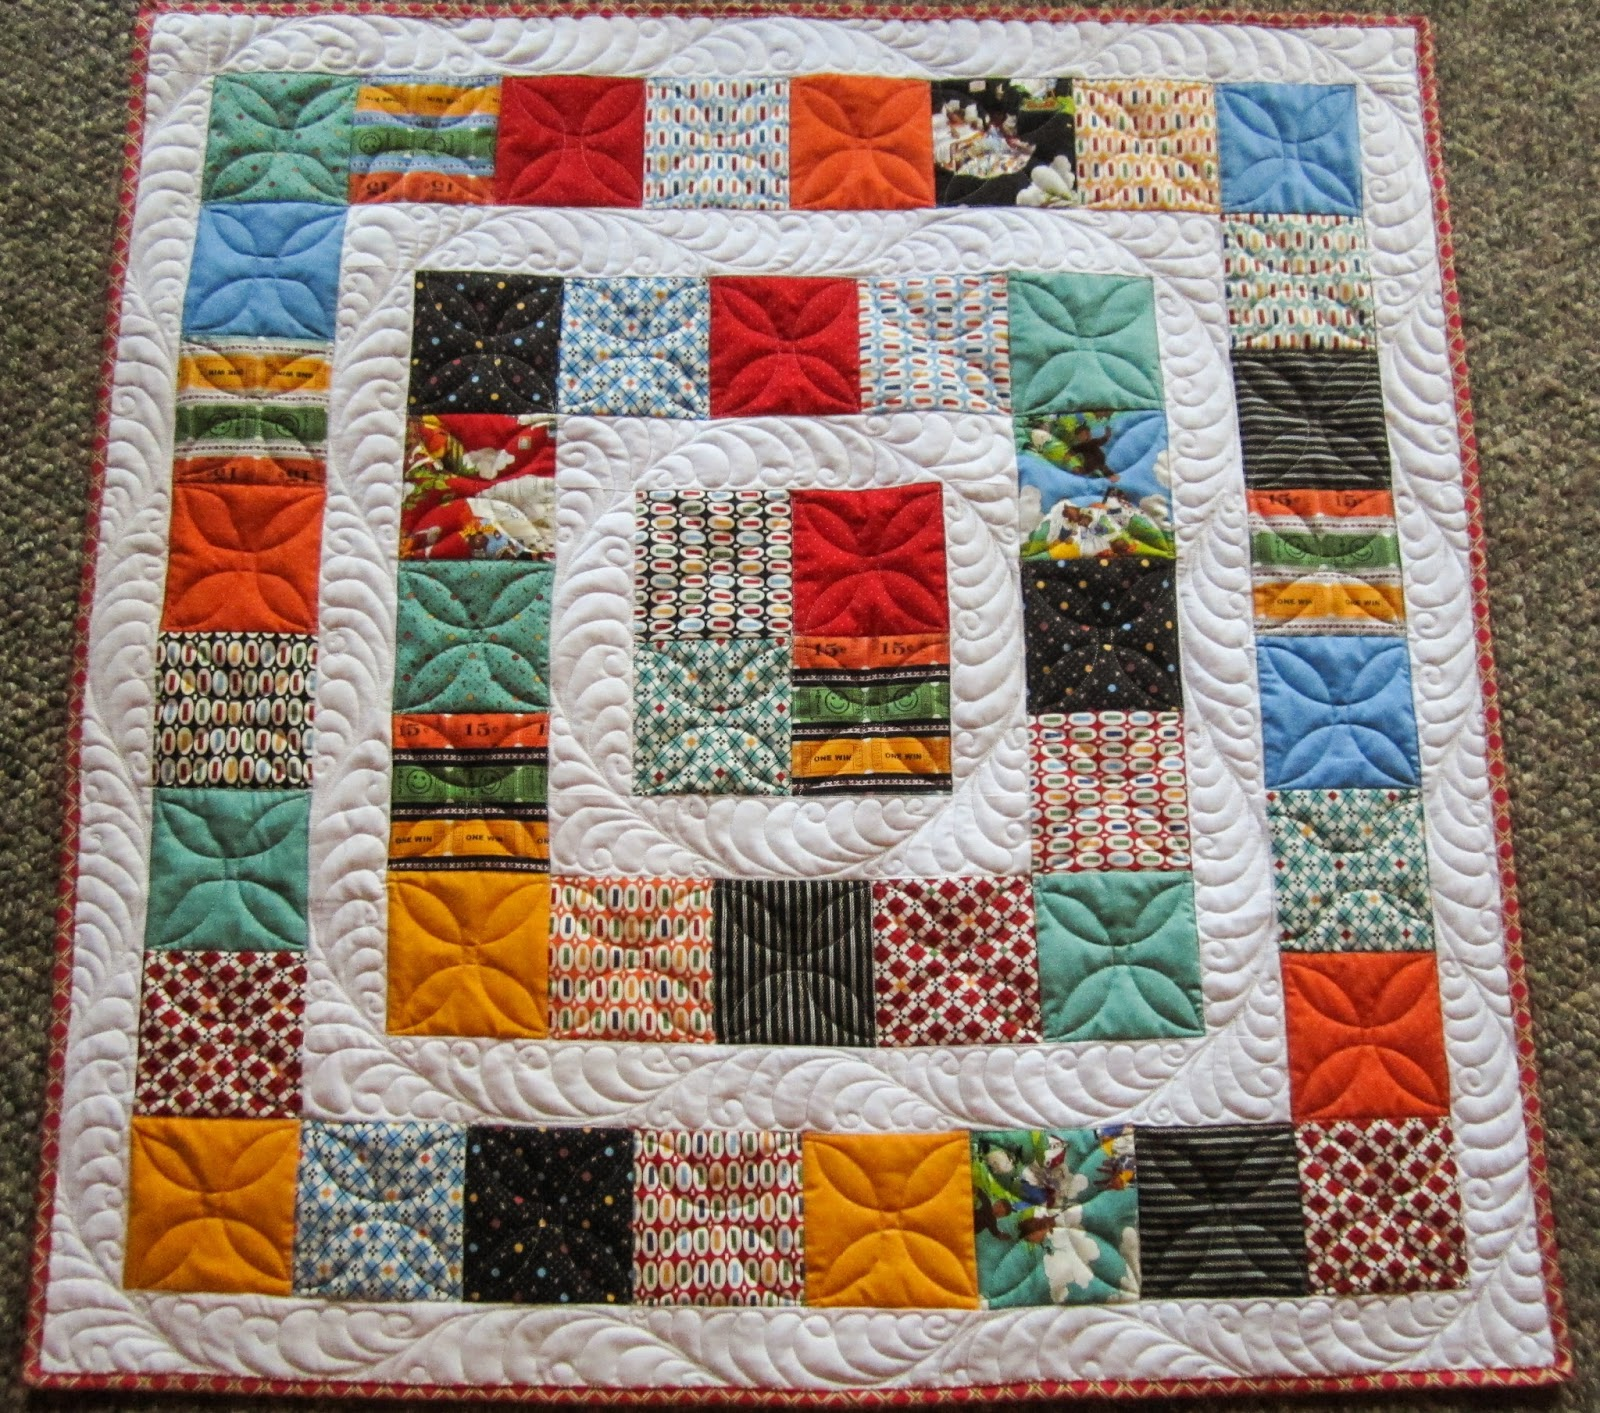 Sue Daurio's Quilting Adventures: 8 quilts for 100 quilts for kids : quilting with kids - Adamdwight.com